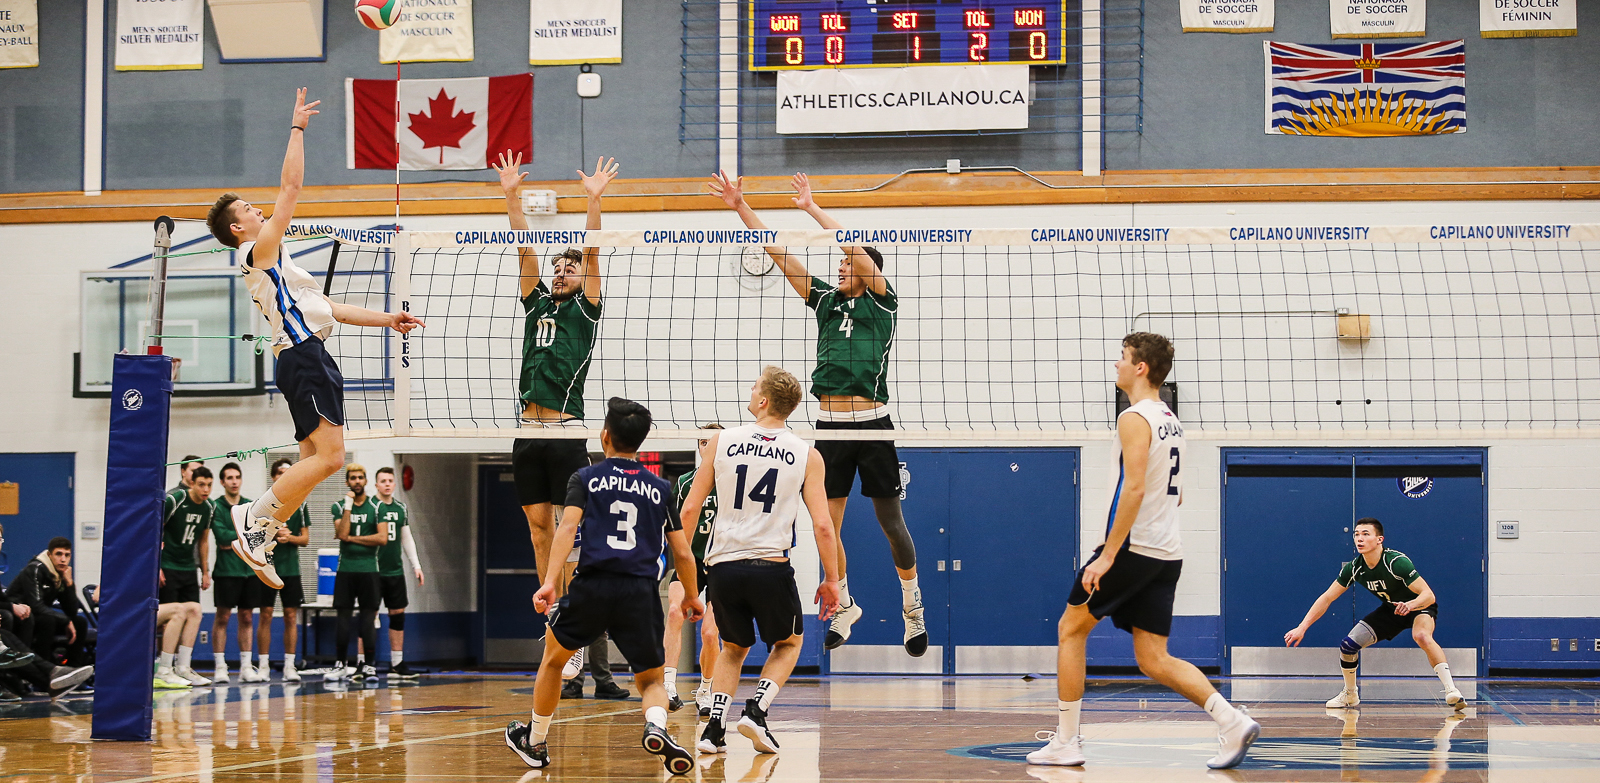 CapU first-year outside hitter Markus Bratsberg rises for an attack against UFV. Photo Paul Yates / Vancouver Sports Pictures